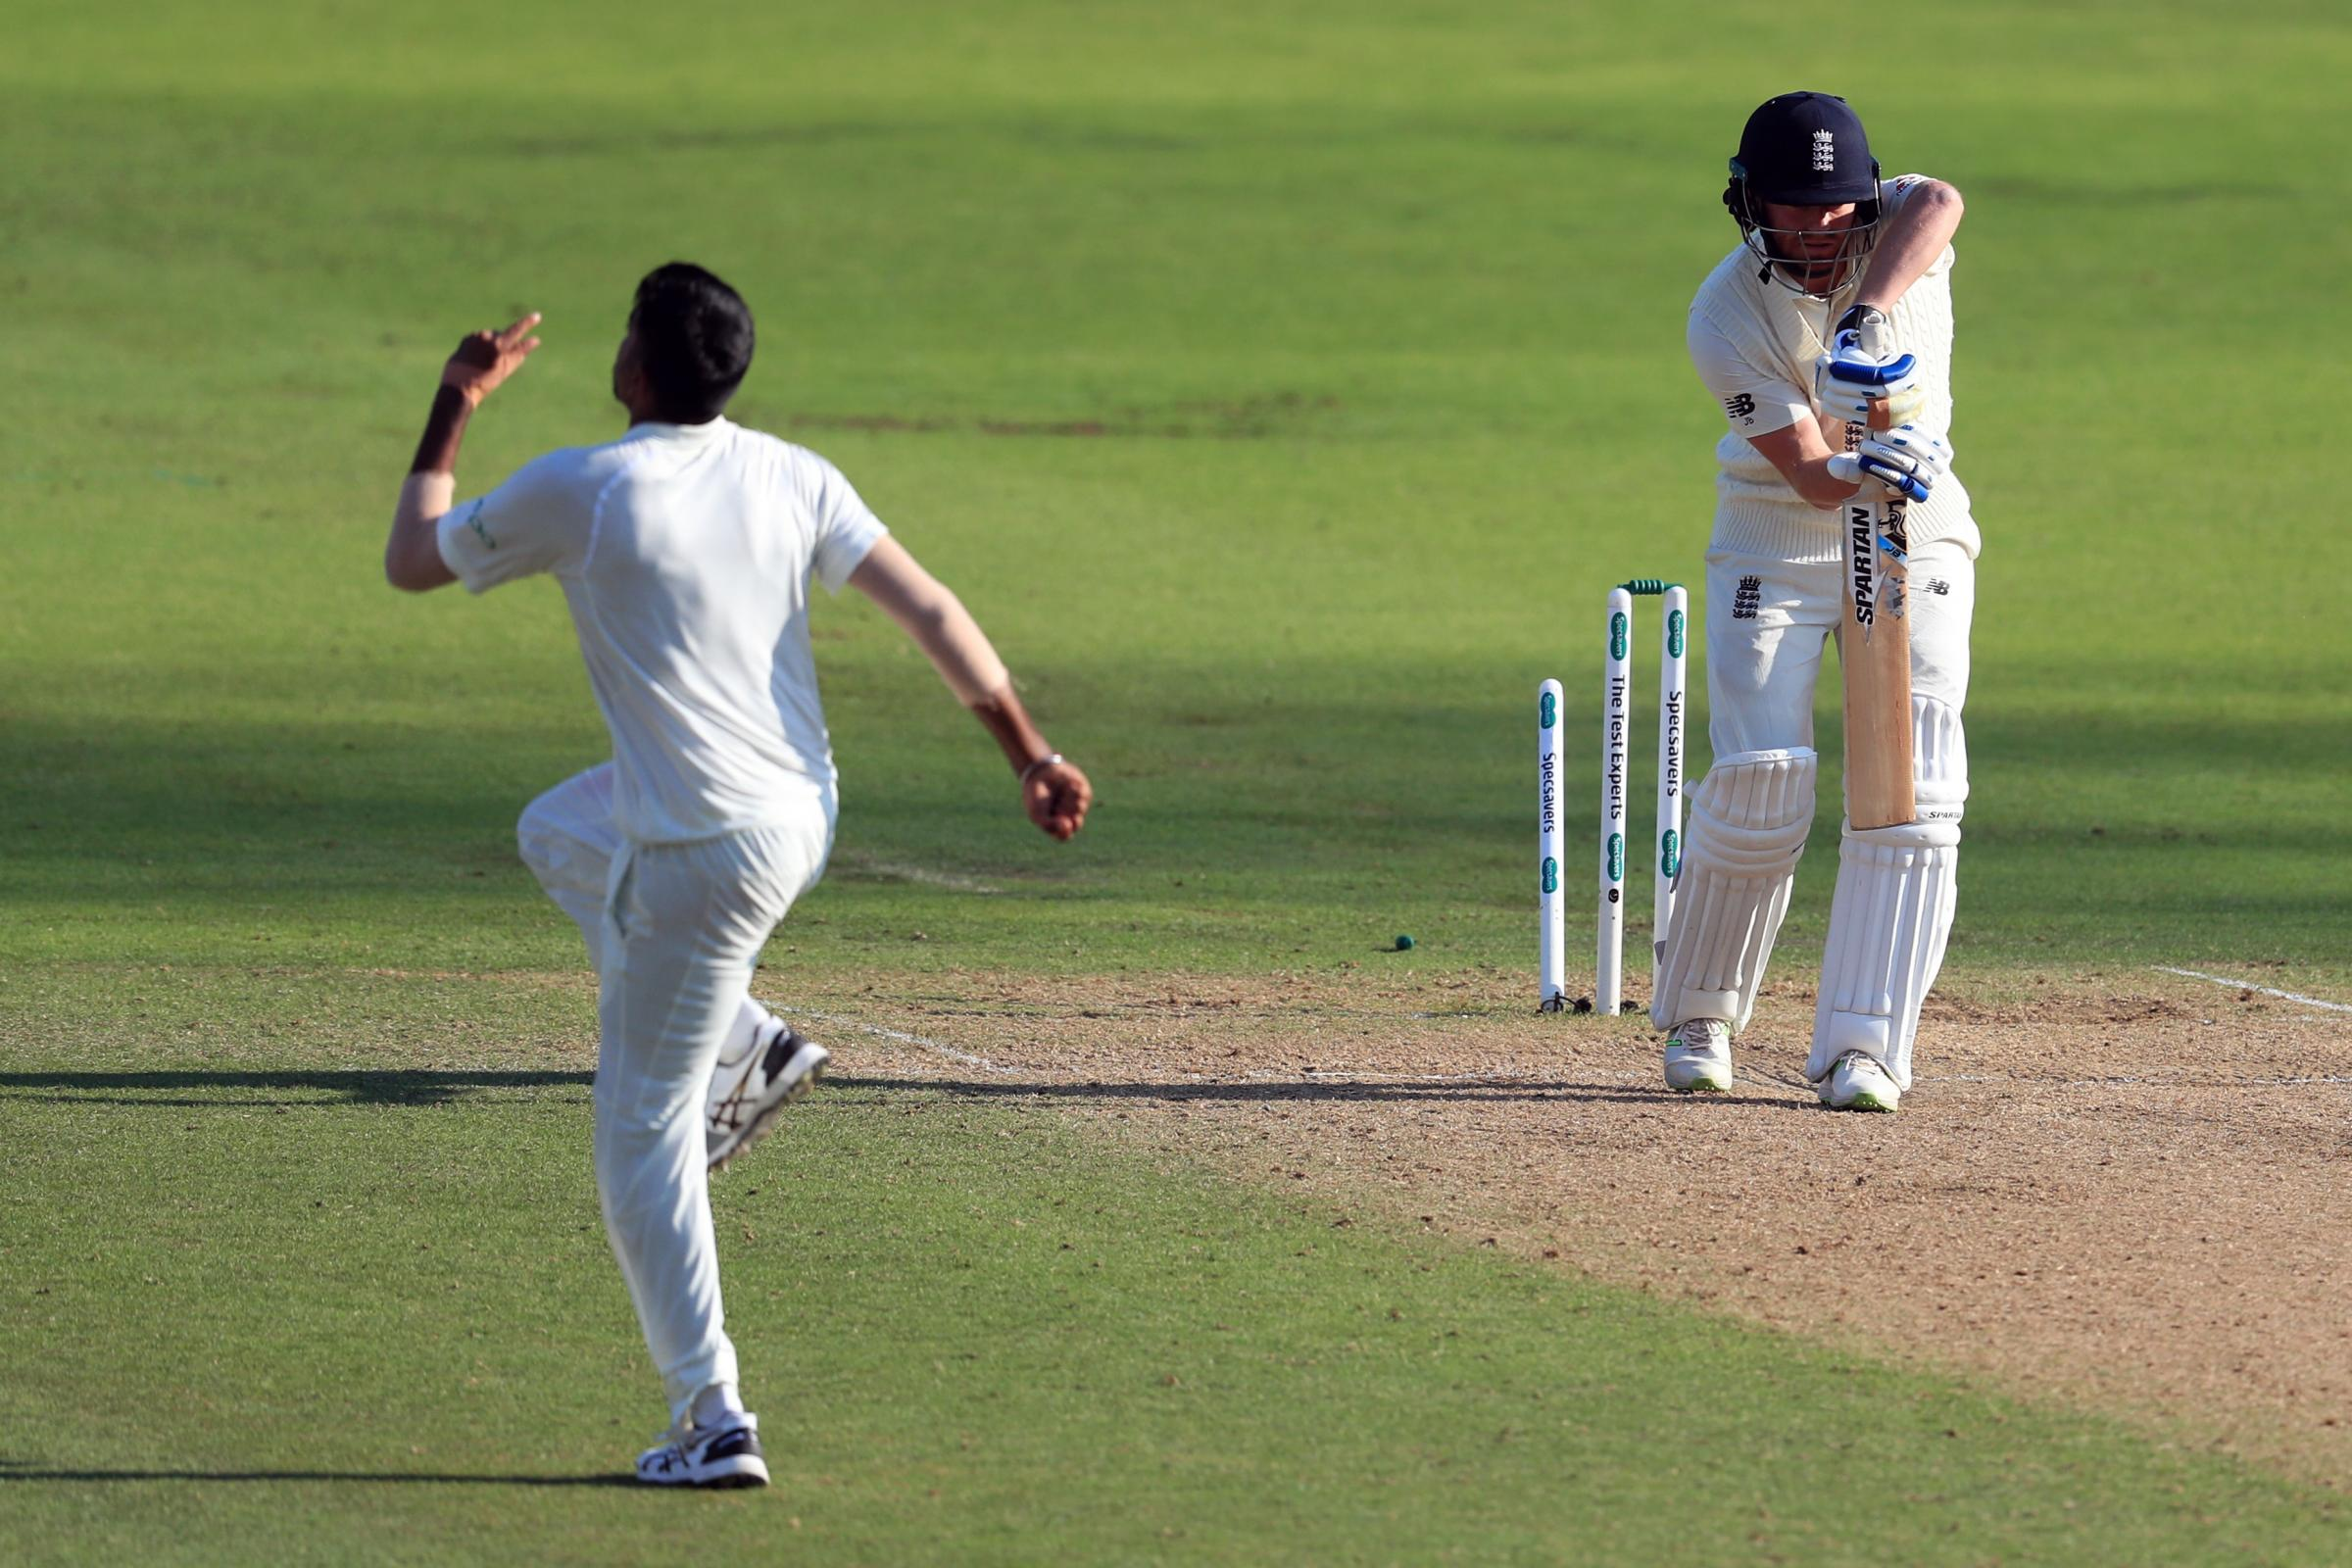 Jasprit Bumrah (left) bowled Jonny Bairstow as two wickets fell in two balls